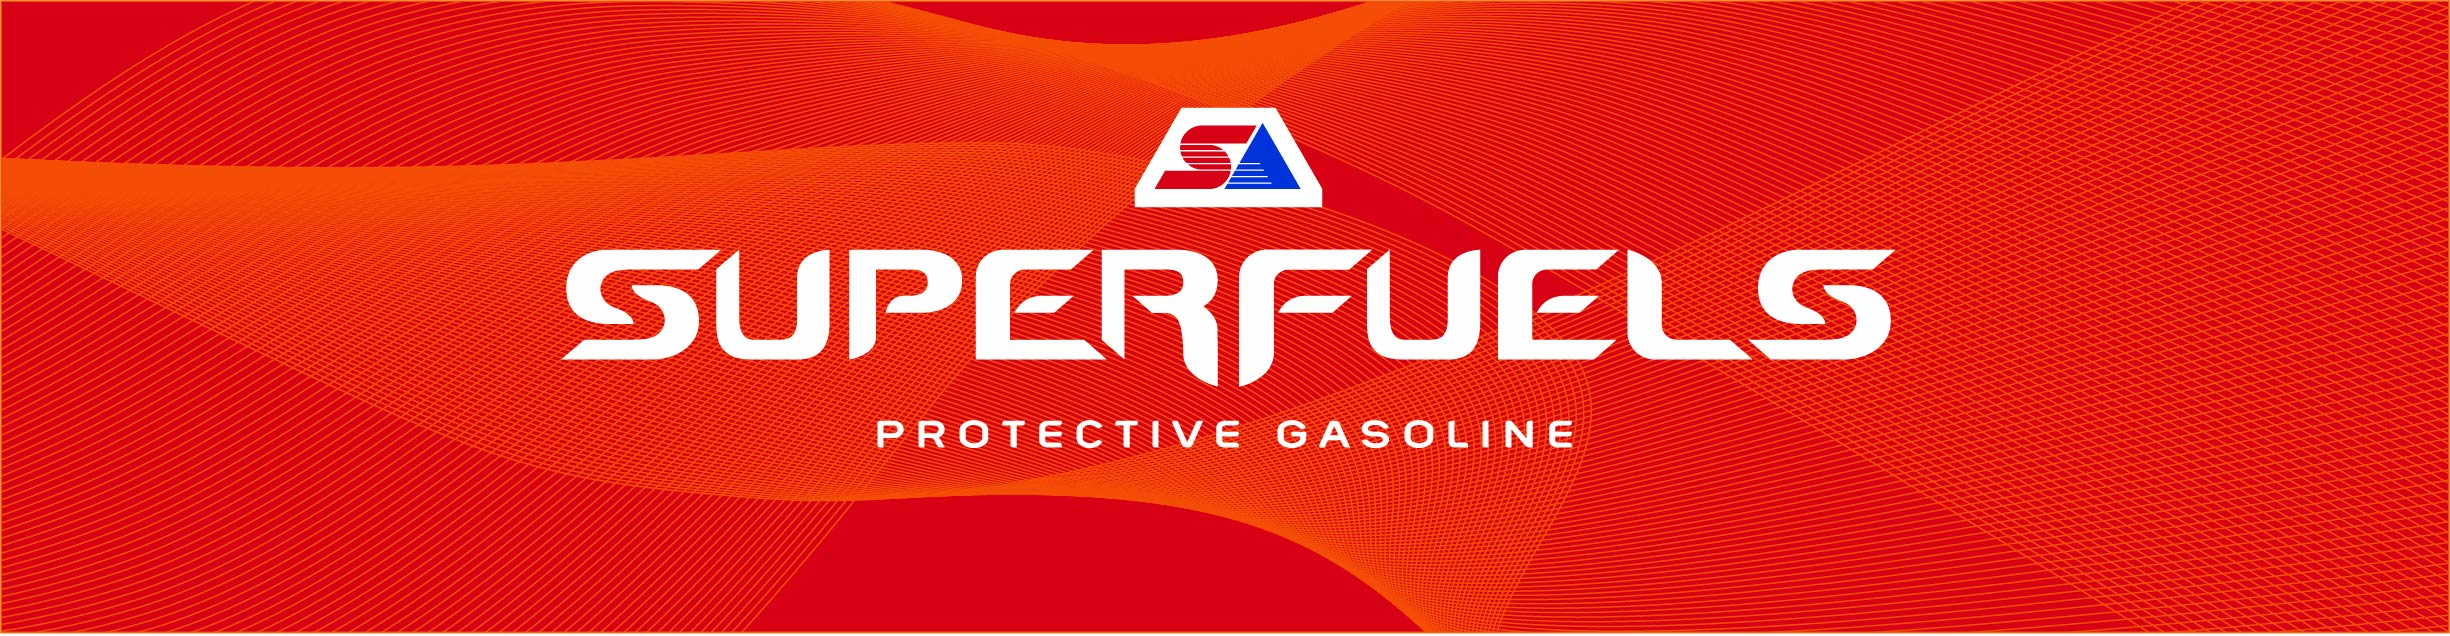 SuperFuels_Concept@2x